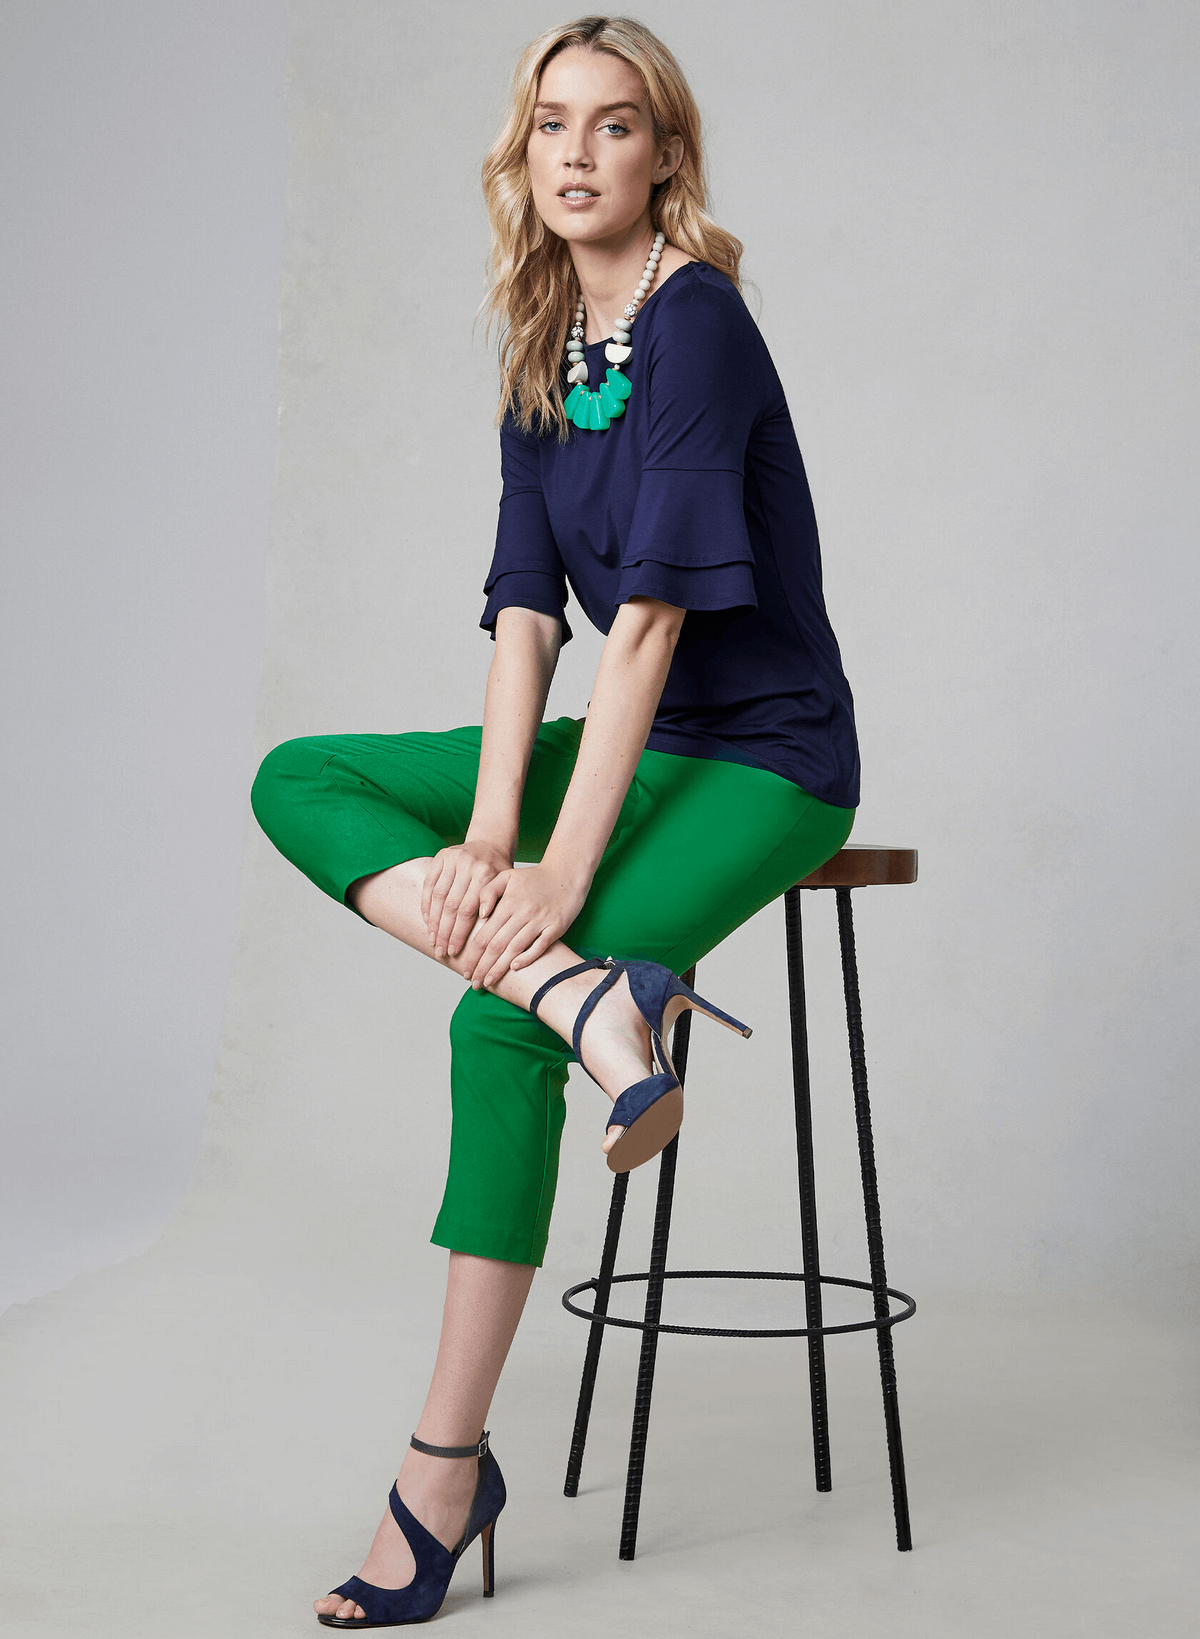 textColour blocking - Navy and green 03 - Melanie Lyne